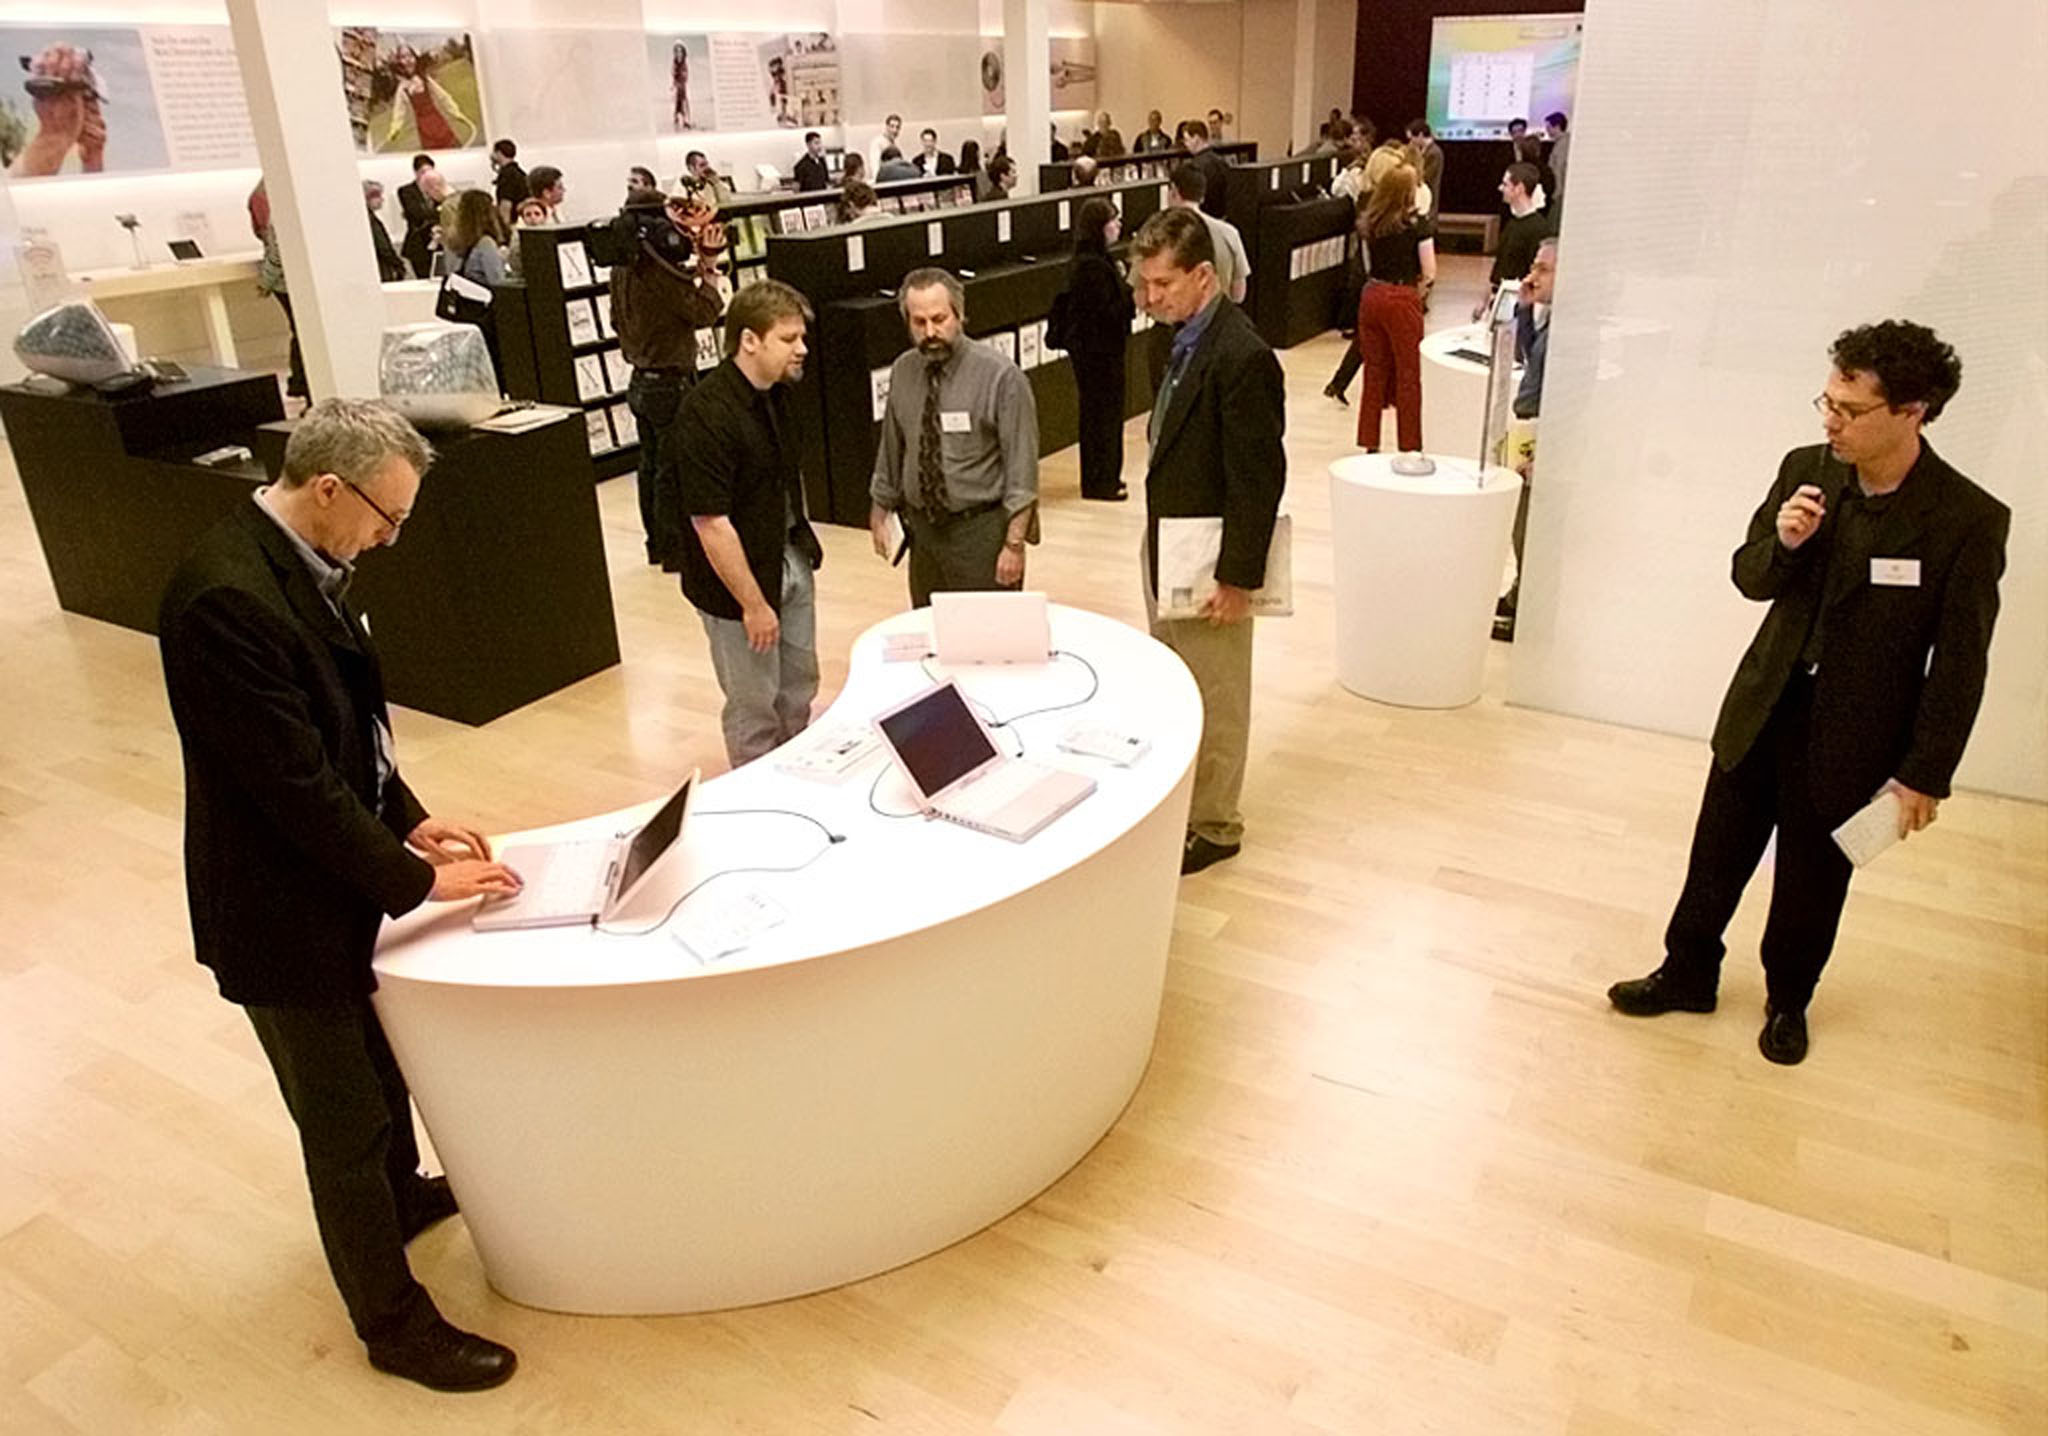 NEWS MEDIA LOOK AT FIRST APPLE RETAIL STORE DURING ANNOUNCEMENT IN VIRGINIA.